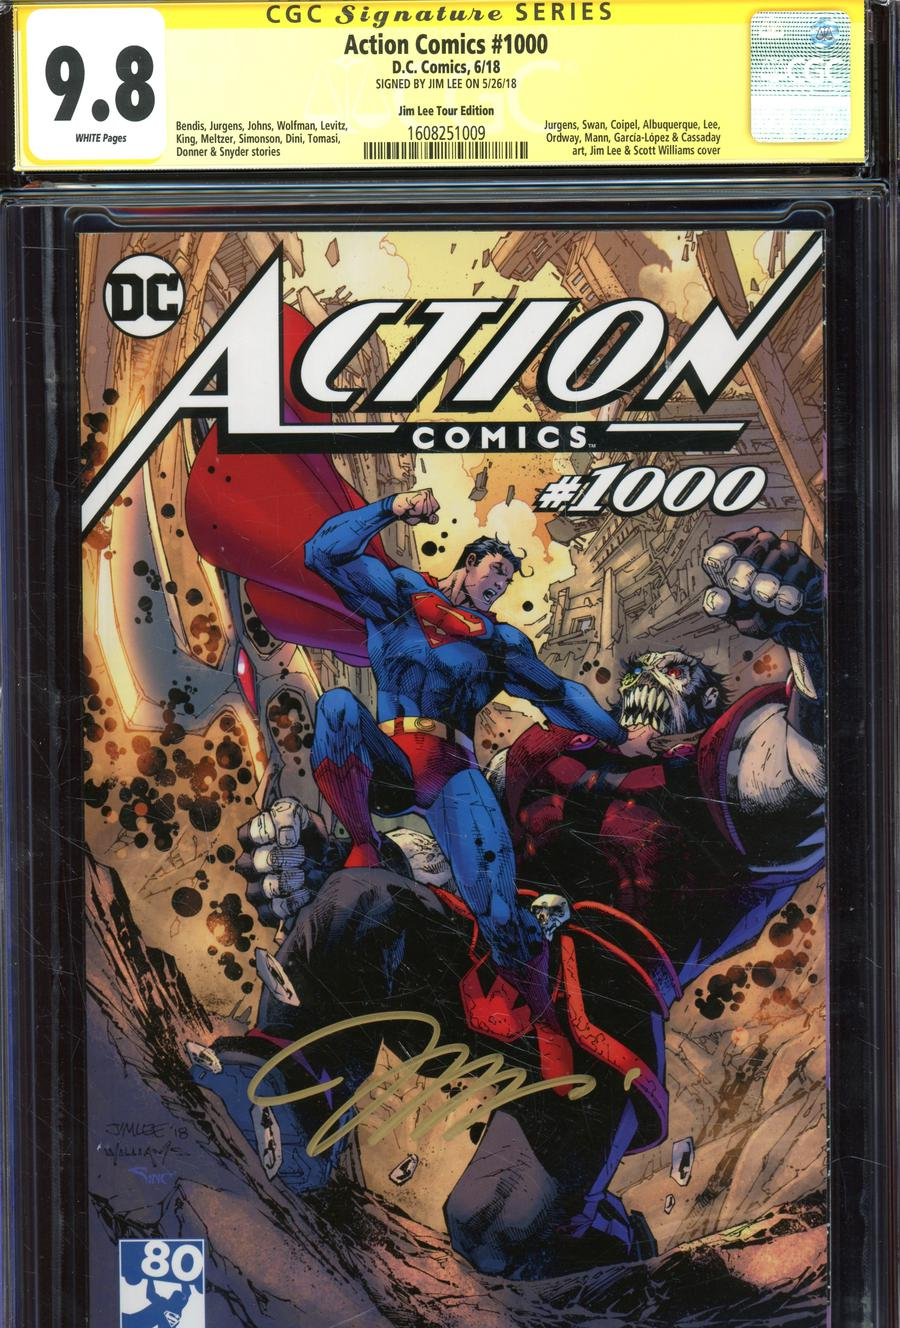 Action Comics Vol 2 #1000 Cover Z-Y Variant Jim Lee Tour Cover Signed By Jim Lee CGC 9.8